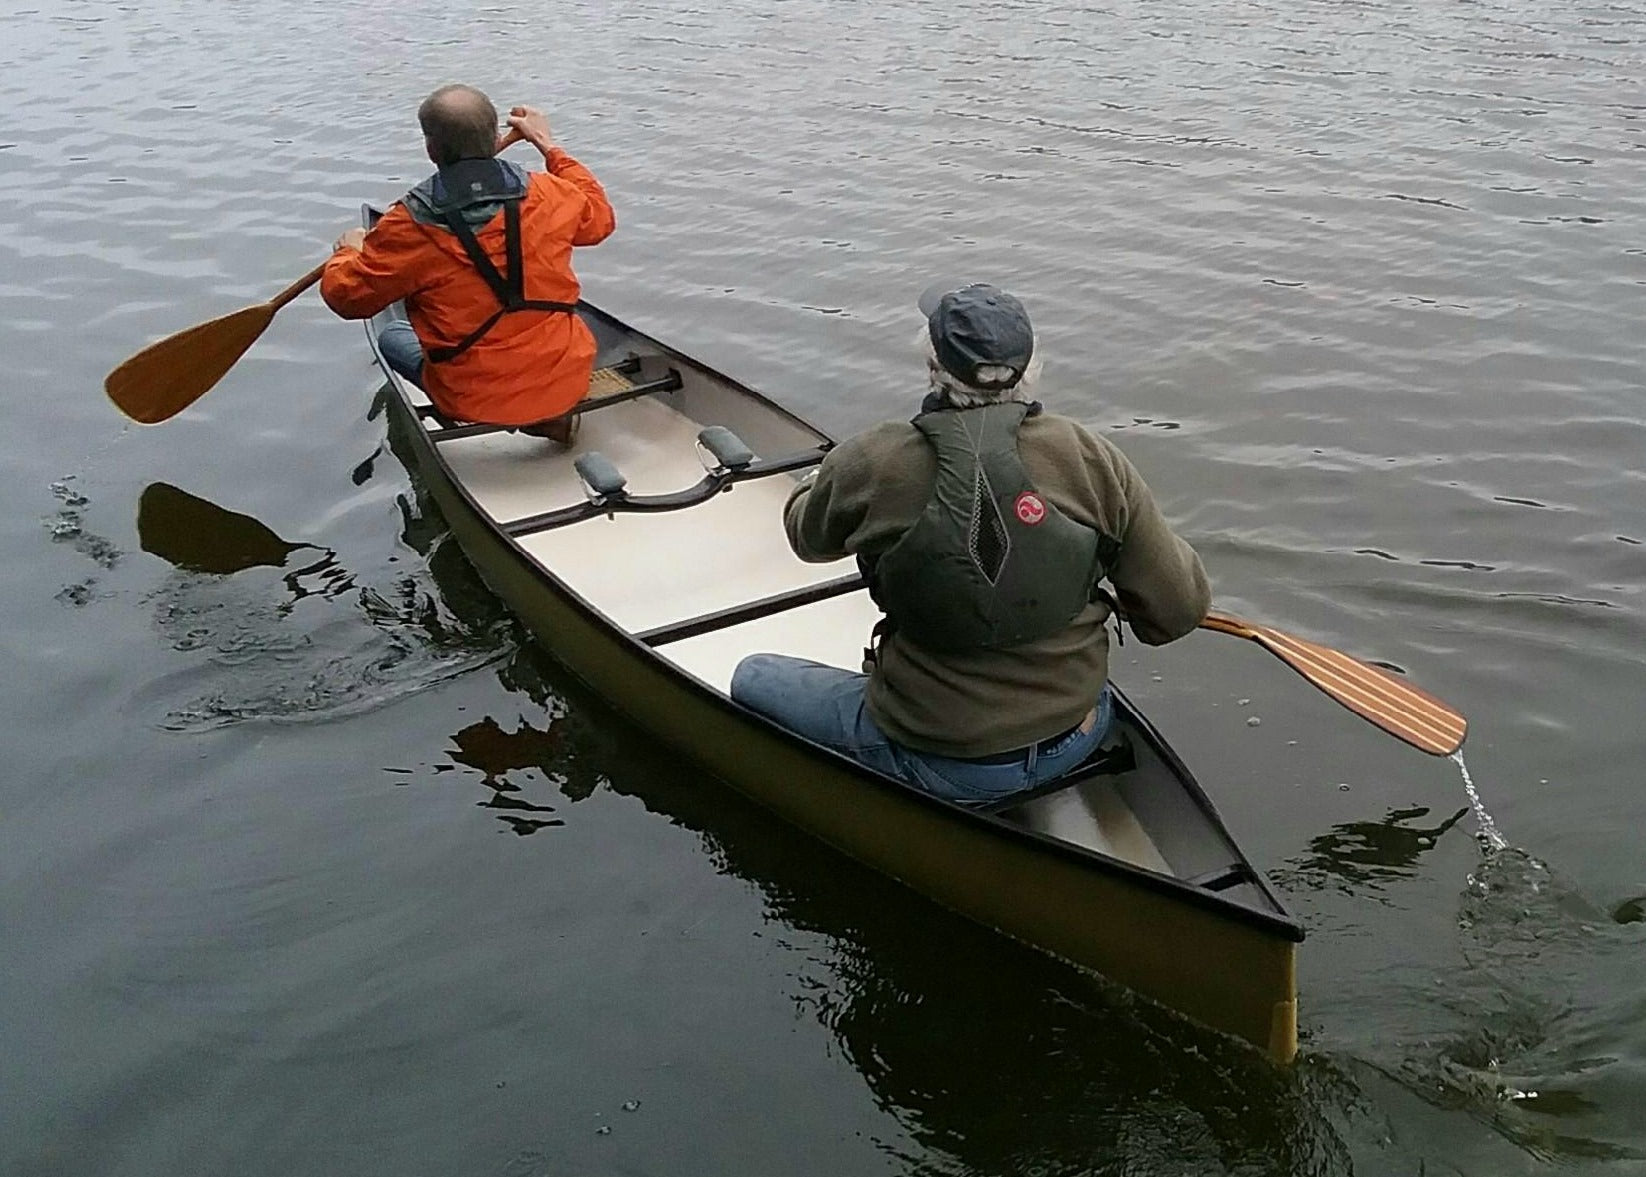 Randy Pfeifer and a paddling partner, seen from behind, test his composite canoe on the water